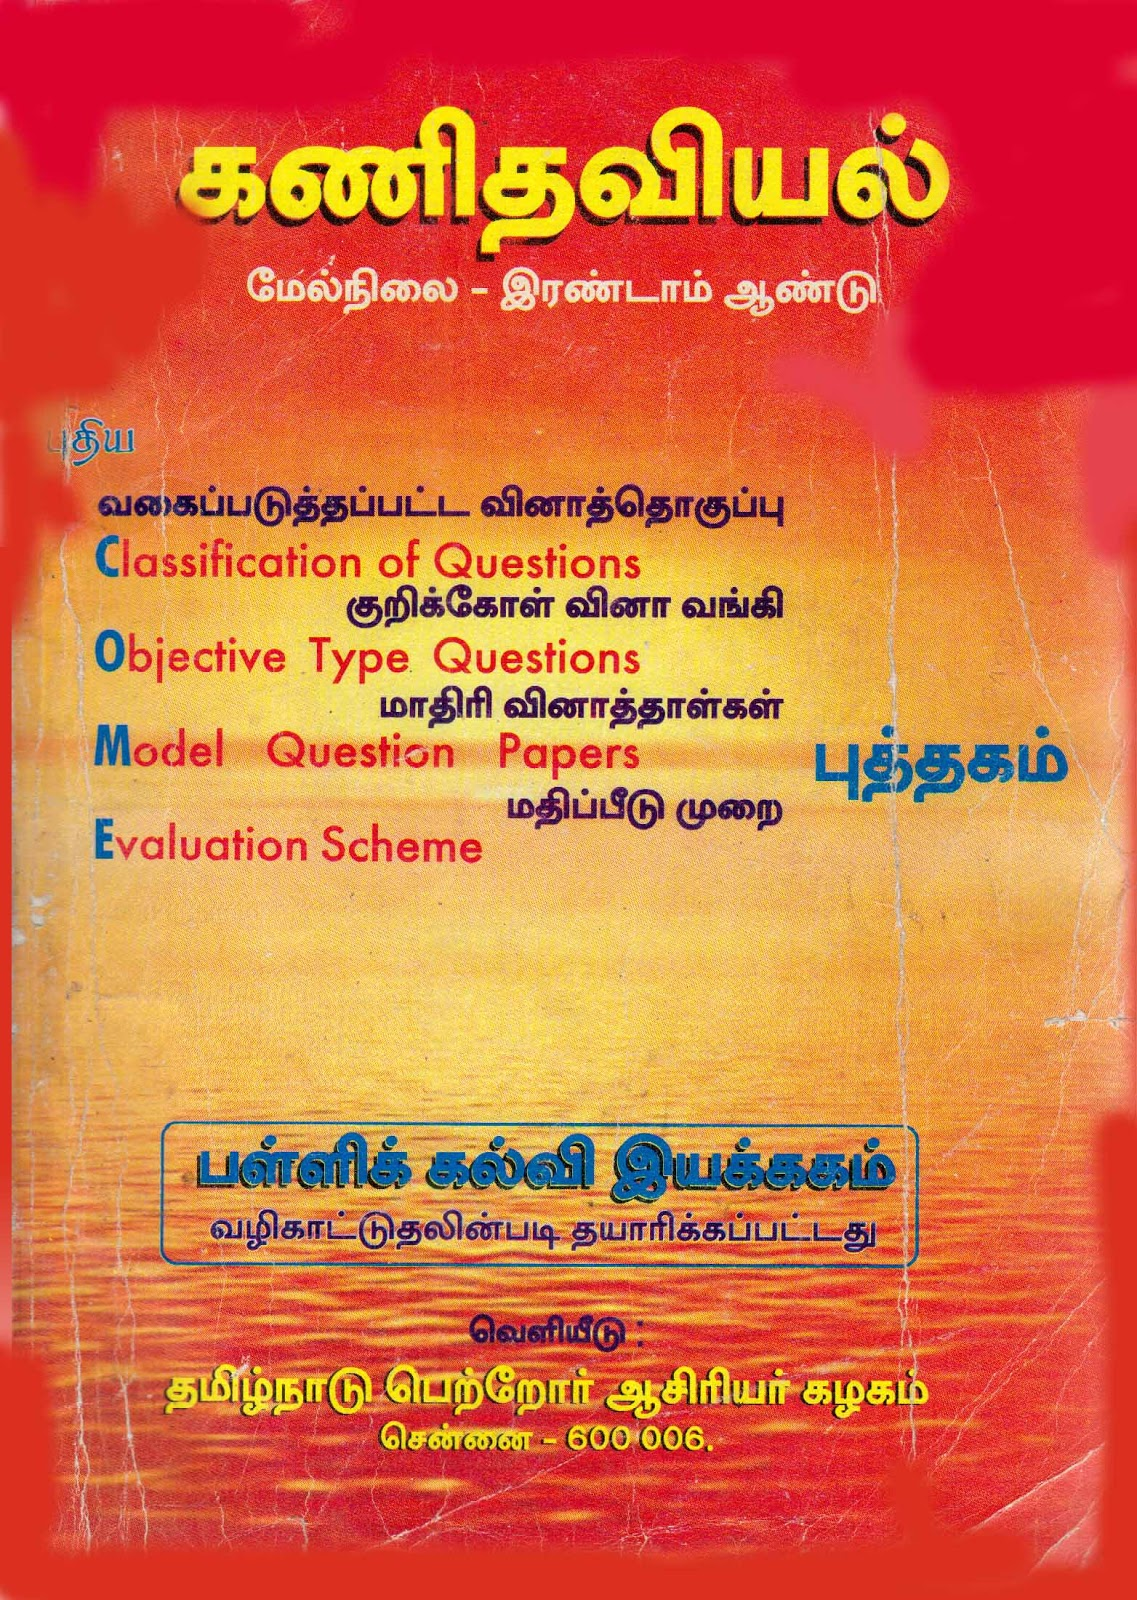 12th maths come book free download tamil medium tnschools co in rh tnschools co in Math Worksheets for 10th Graders 10th standard maths guide tamil nadu